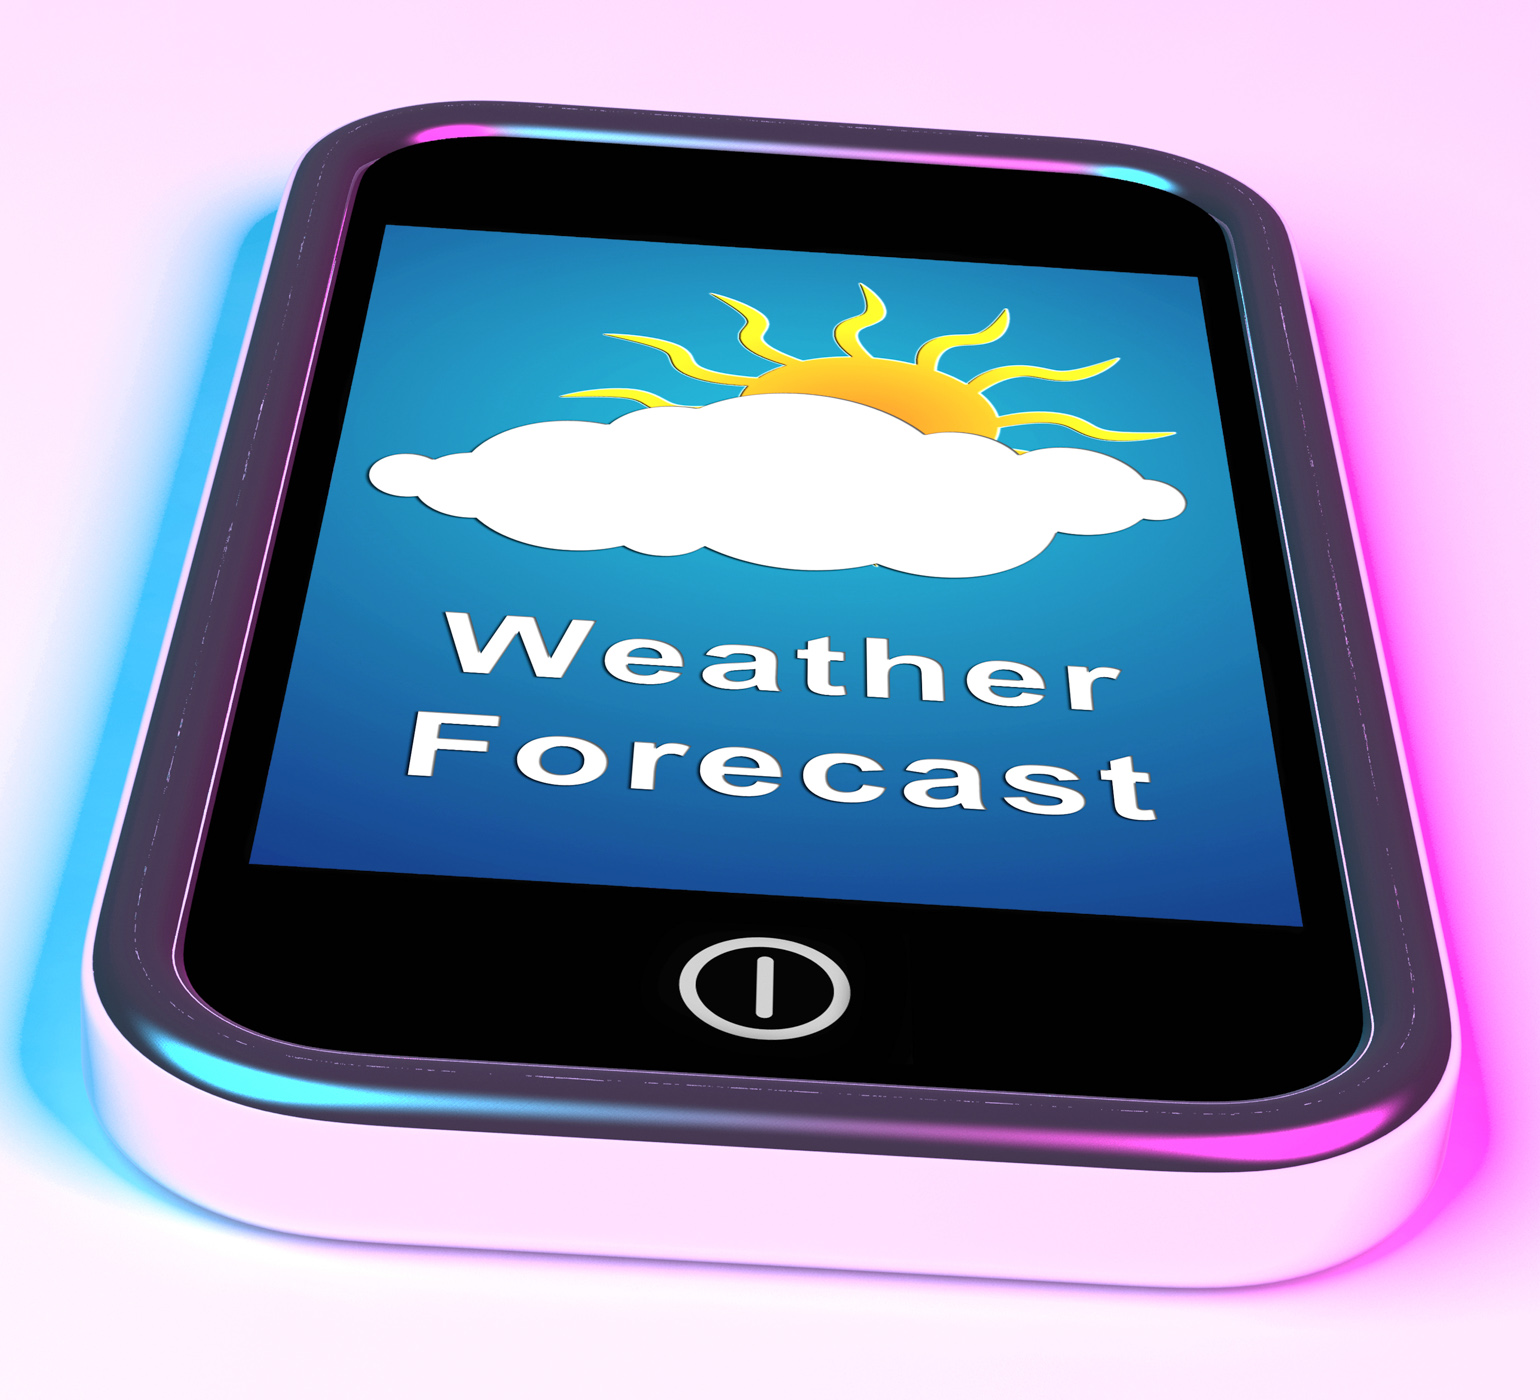 Mobile phone shows cloudy sun weather forecast photo